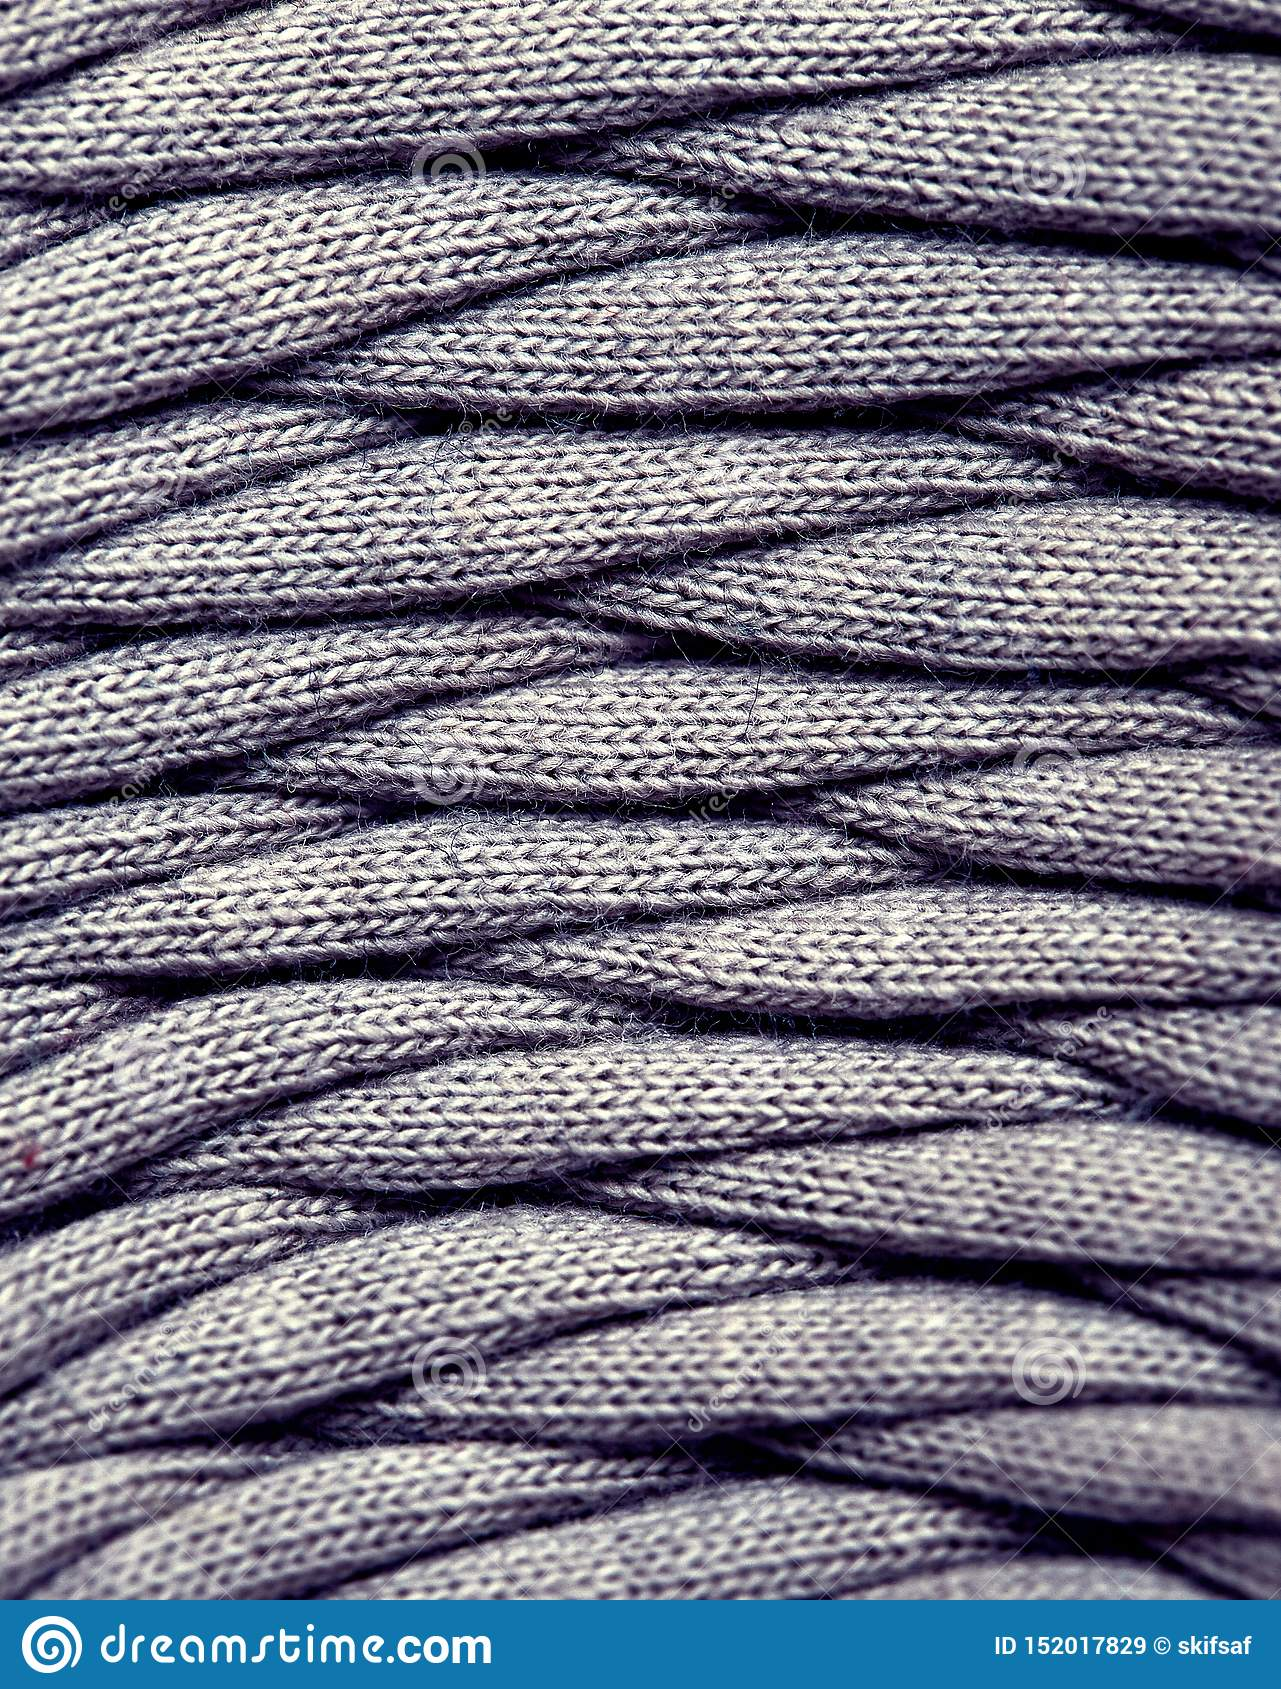 Skein Of Gray Knitted Yarn Close-up. Macro Photography ...